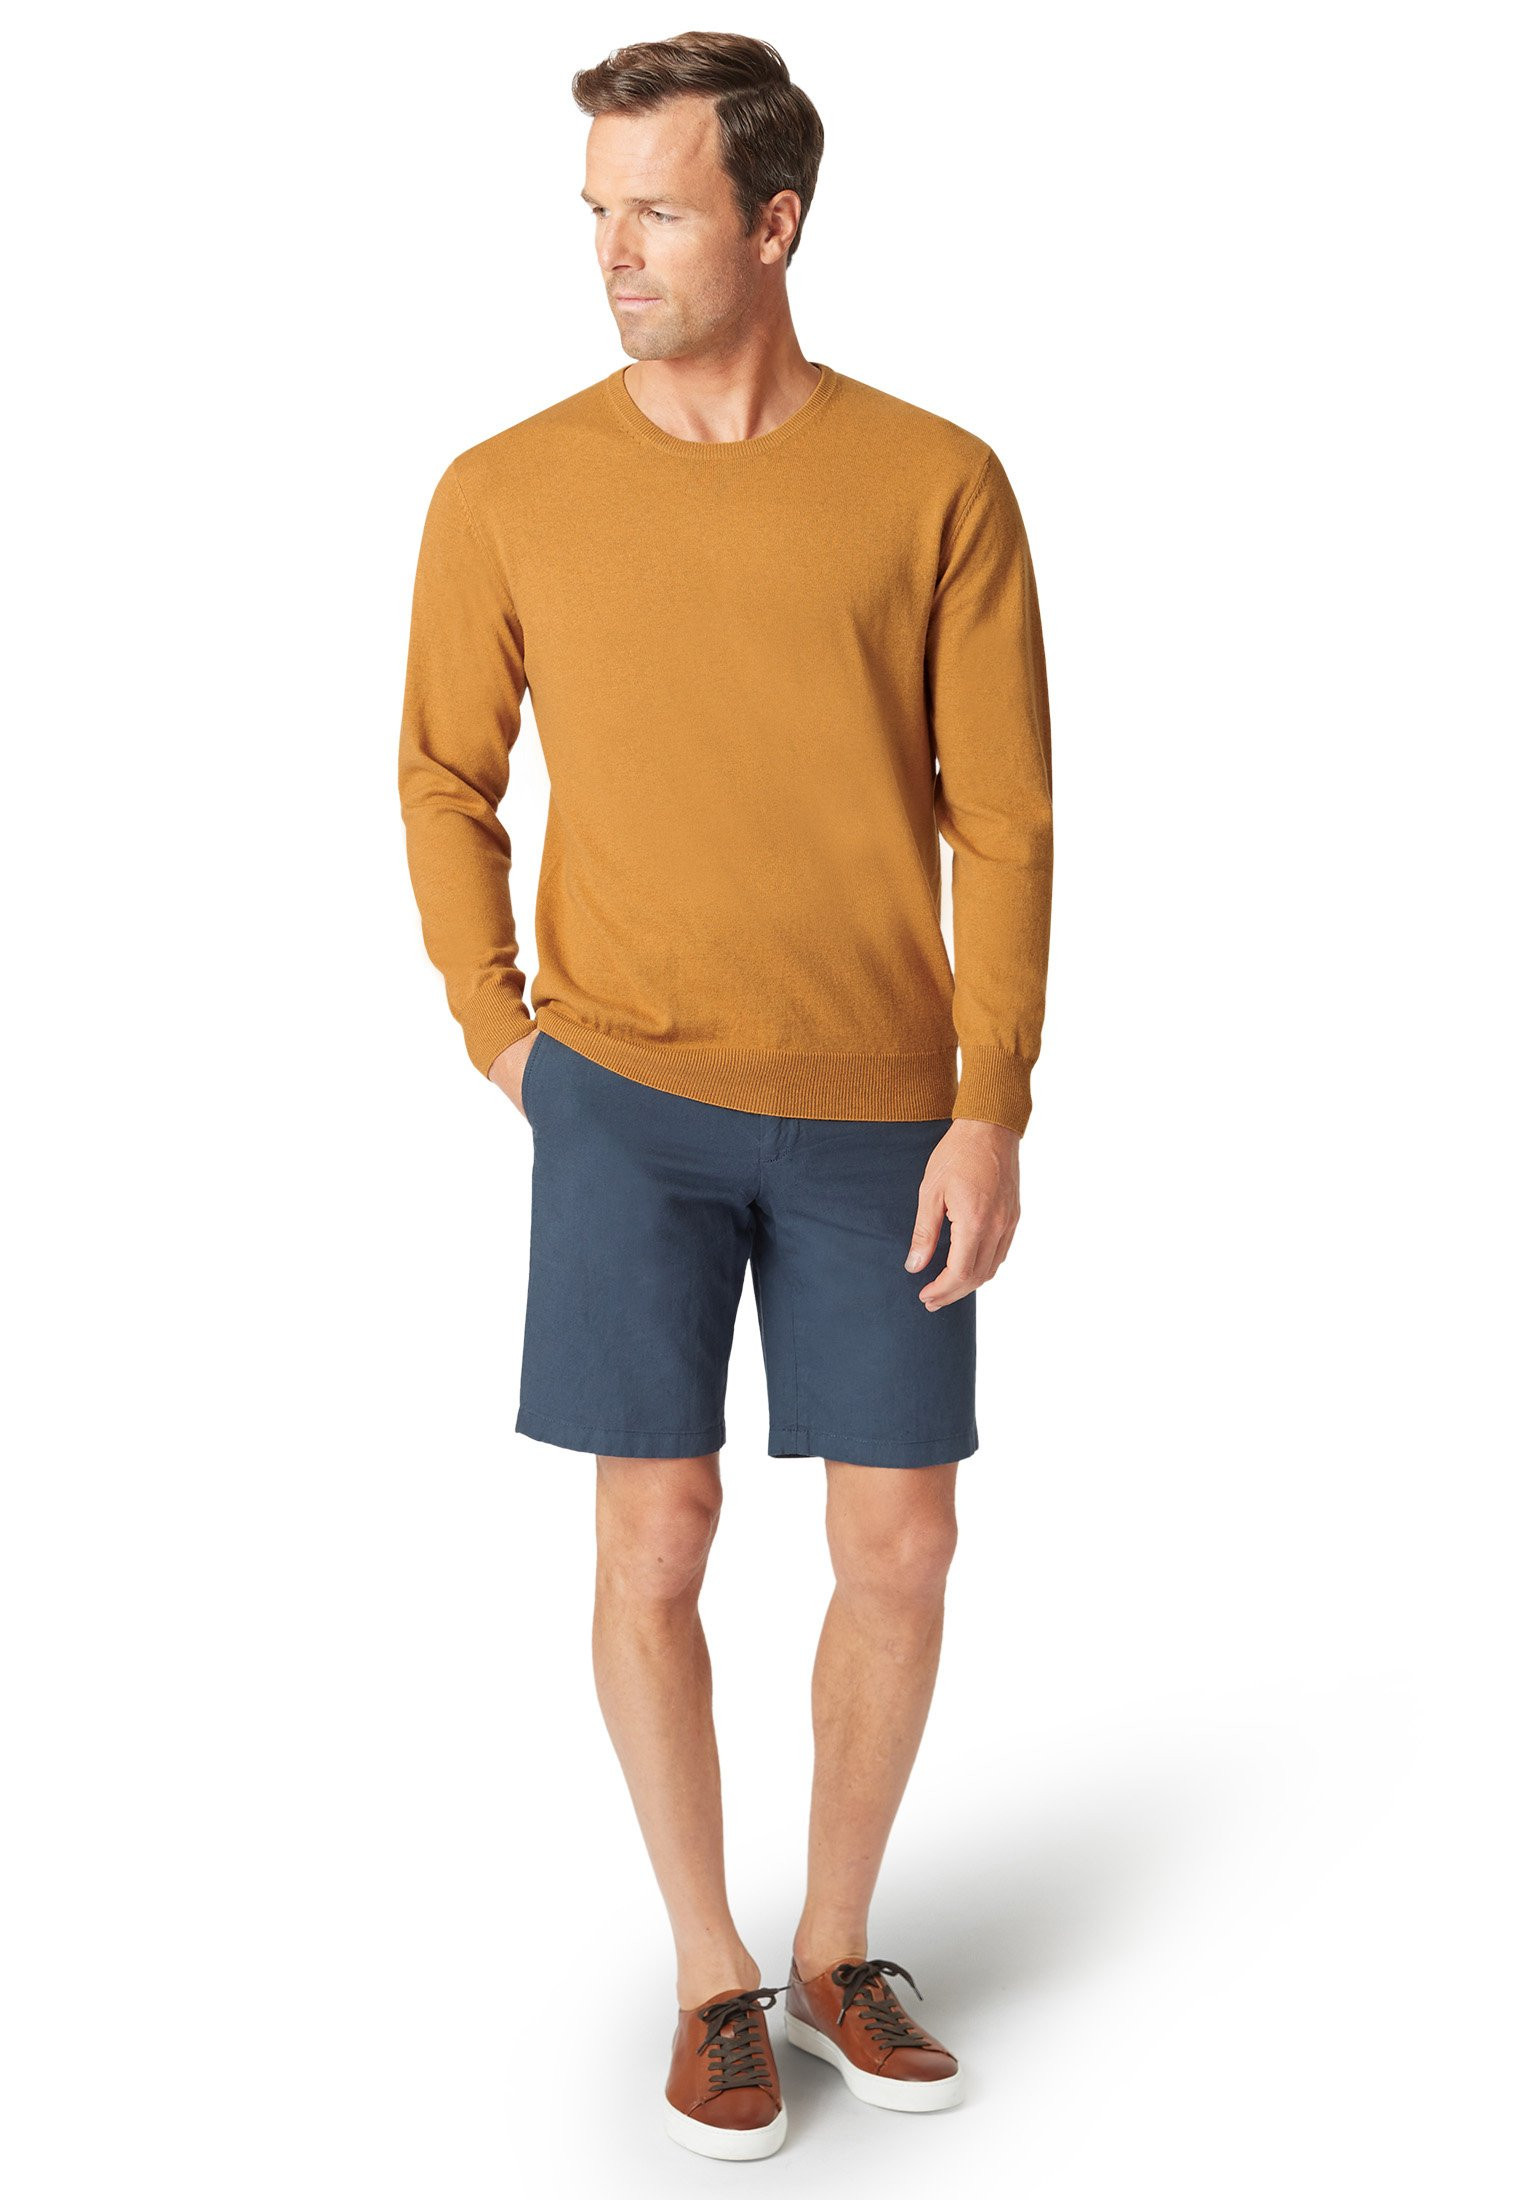 Aylsham Mustard Luxury Cotton Merino Crew Neck Sweater